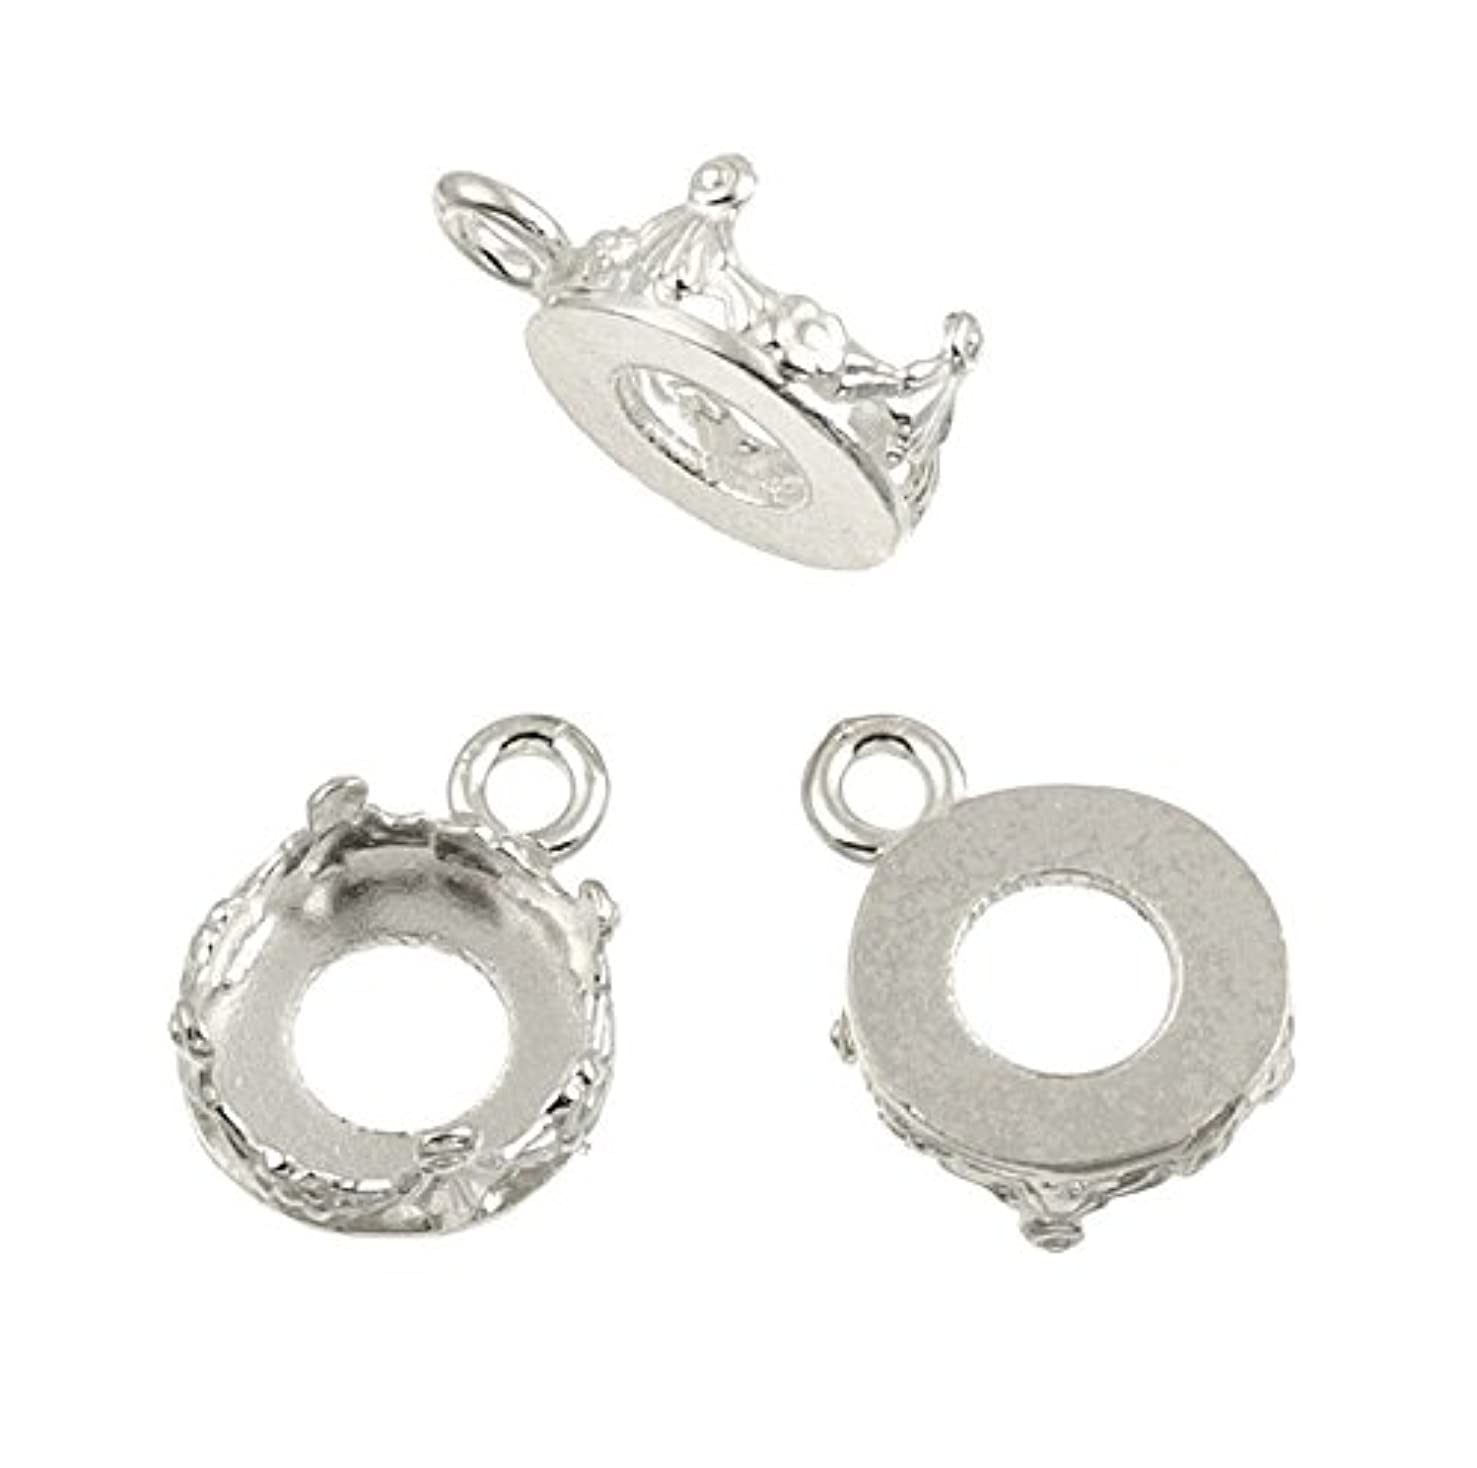 5 Pack - Round Bezel Cup Settings 14 Mm Sterling Silver 925 Pendant Earring Charm 346